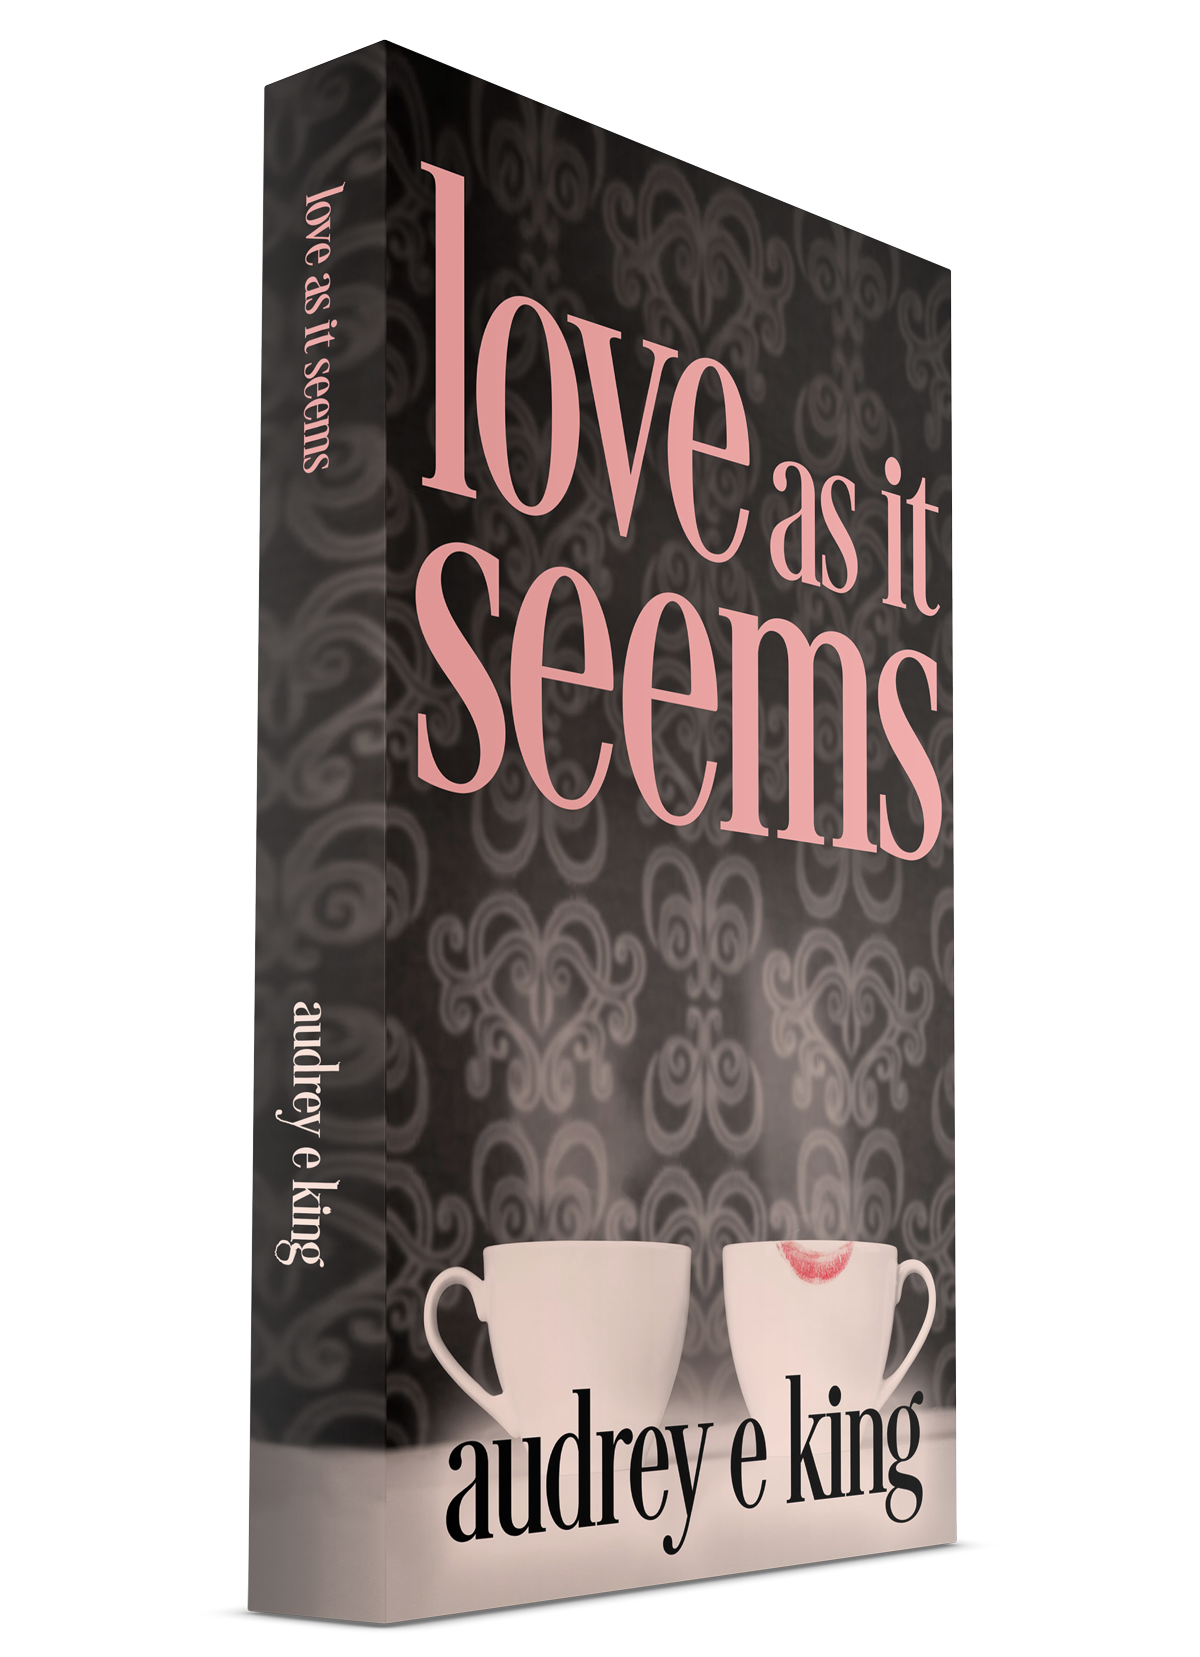 Print cover for Love As It Seems by Audrey E. King